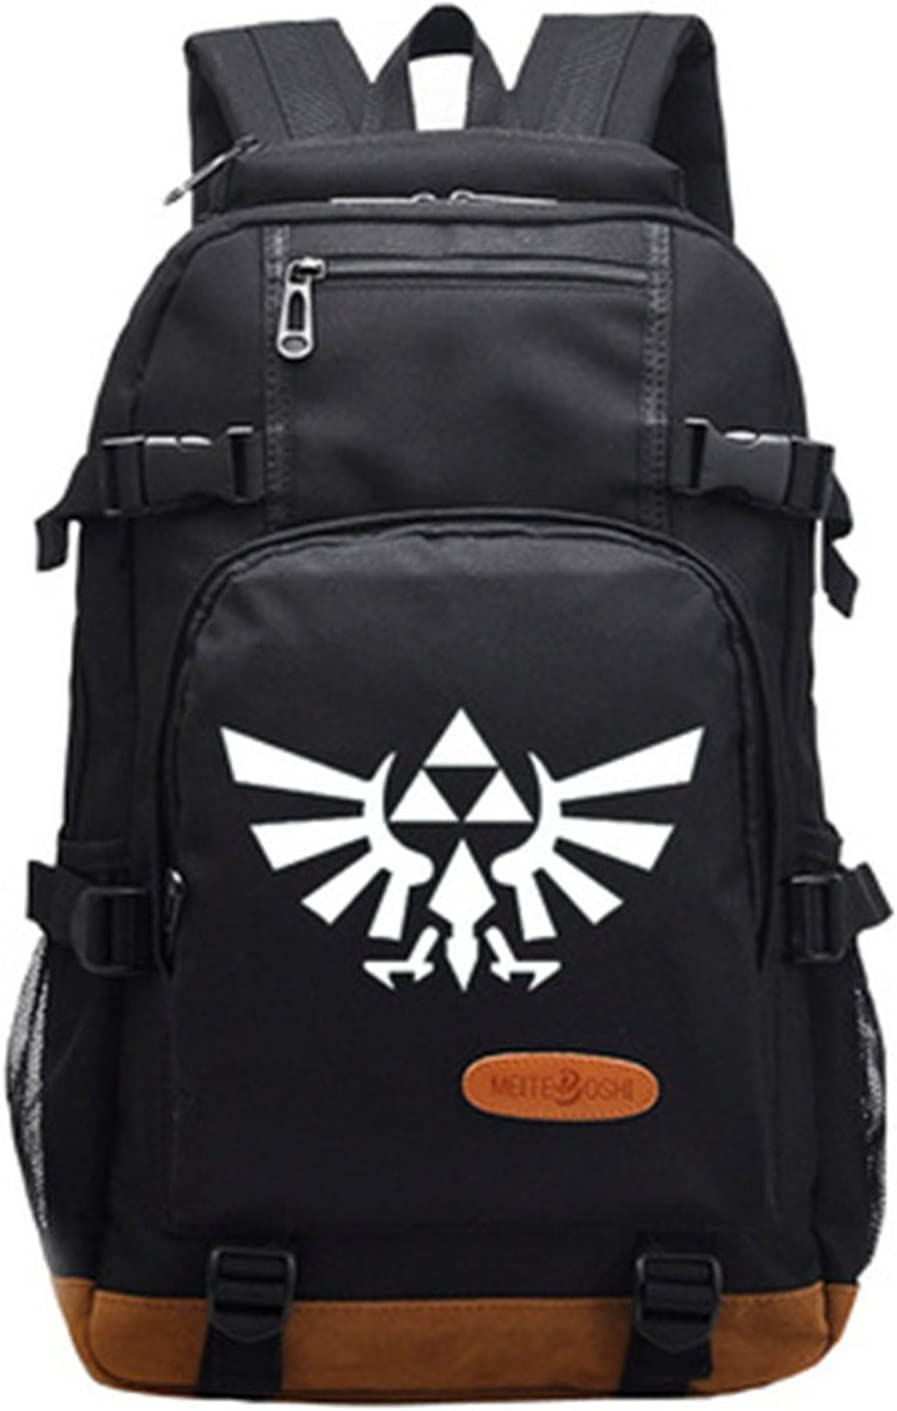 Gumstyle The Legend of Zelda Luminous School Bag College Backpack Bookbags Student Laptop Bags